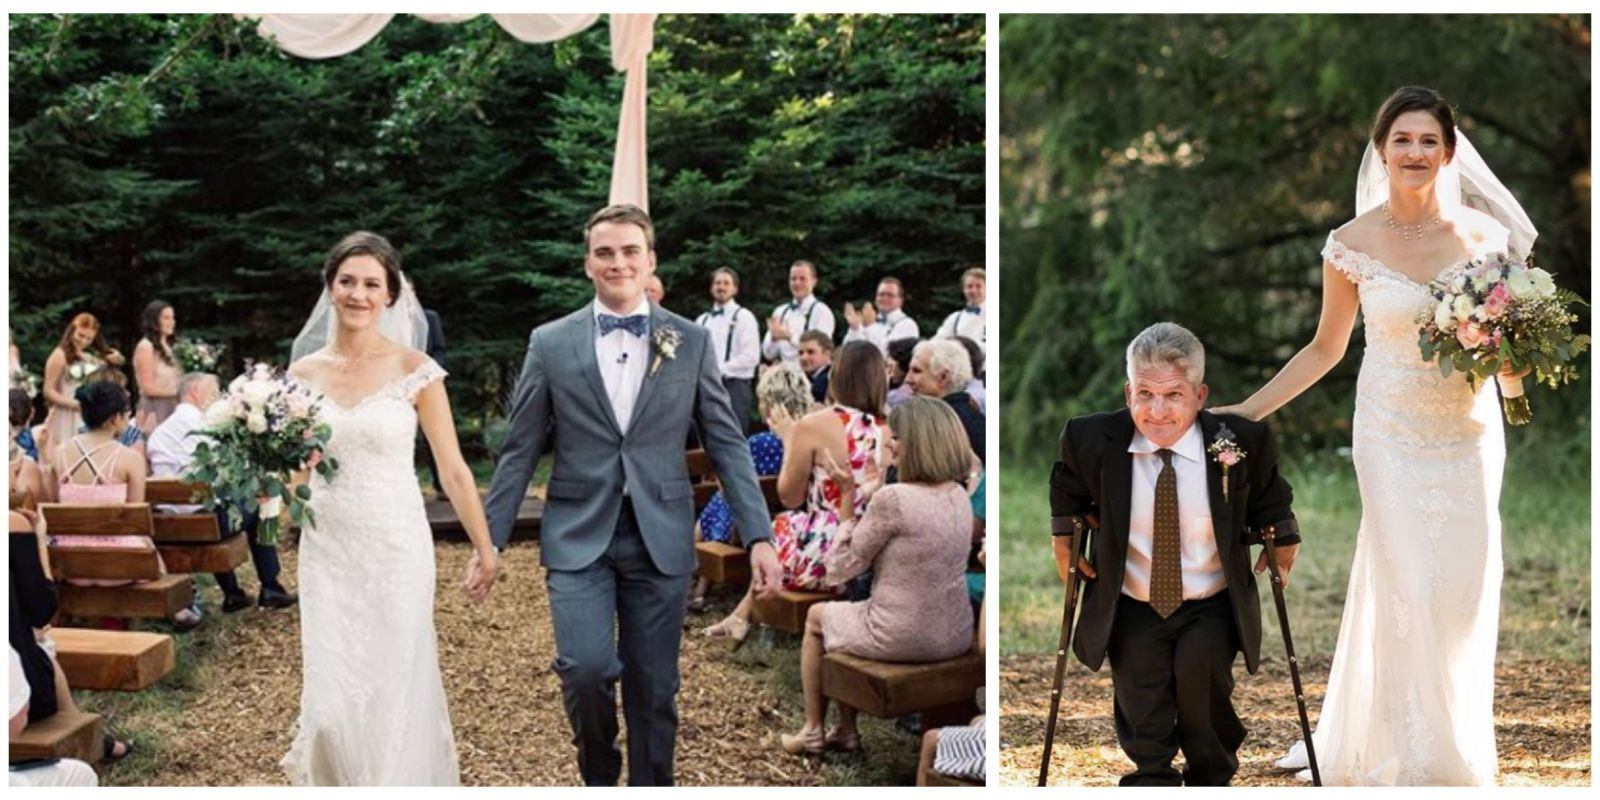 56 Best Mollies Wedding Images On Pinterest: Little People, Big World Star Molly Roloff Is Married